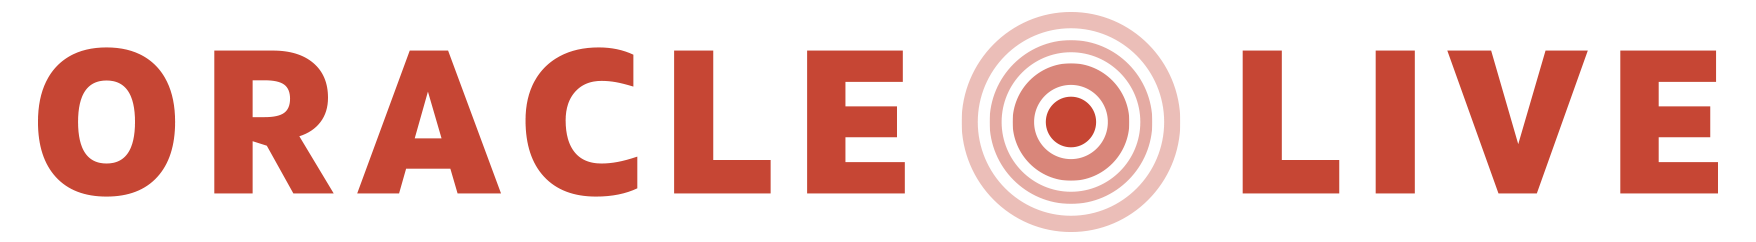 OracleLive Logo